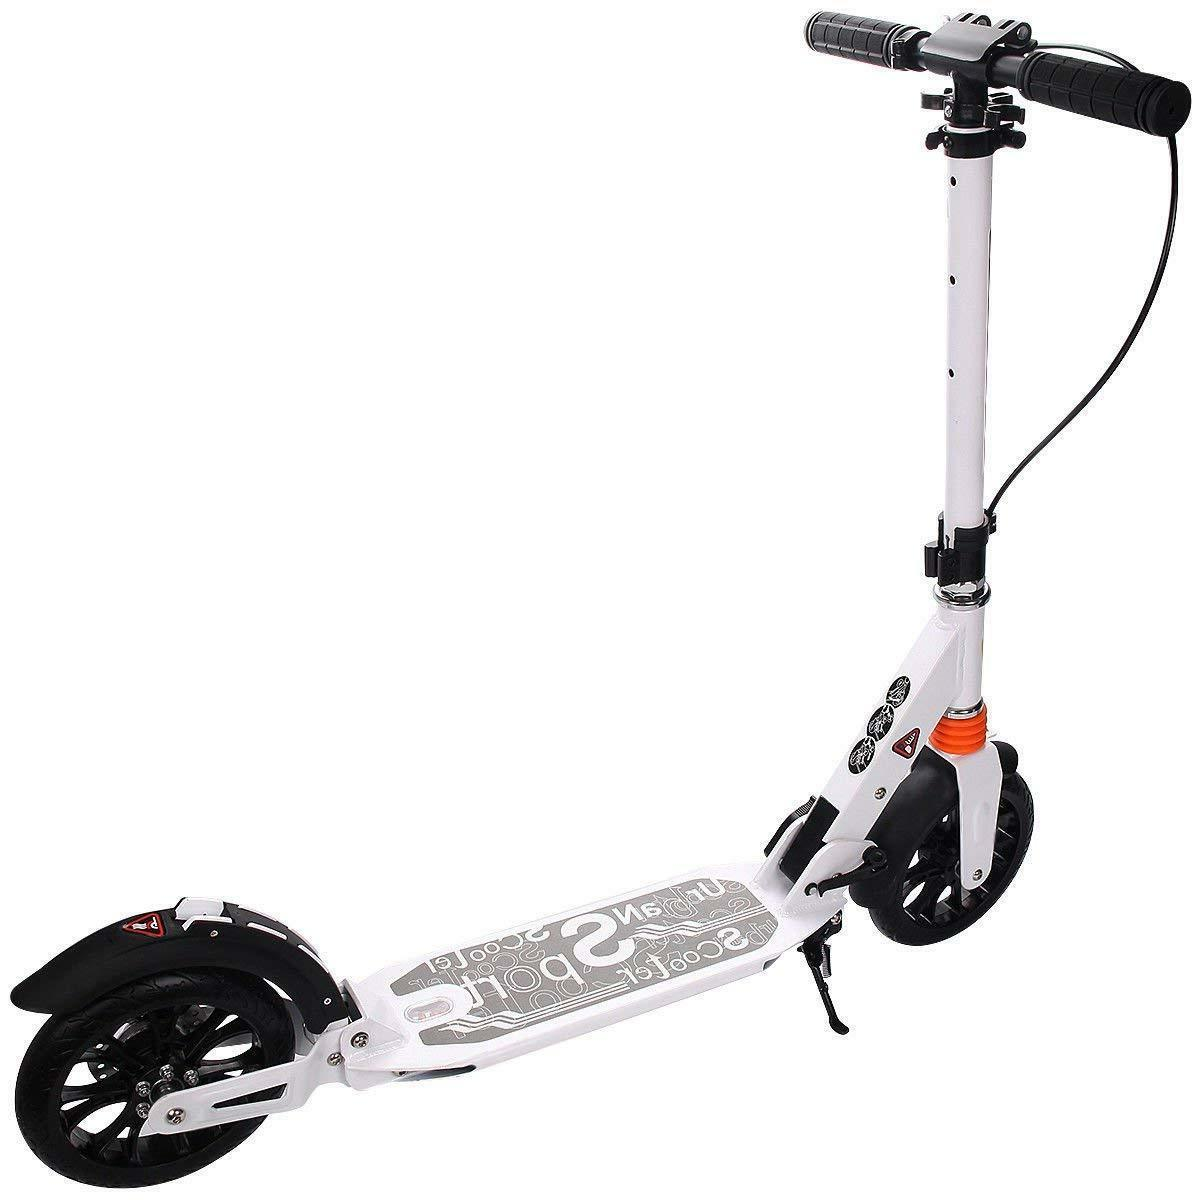 Adult Kick Scooter Handbrake Adjustable Height,